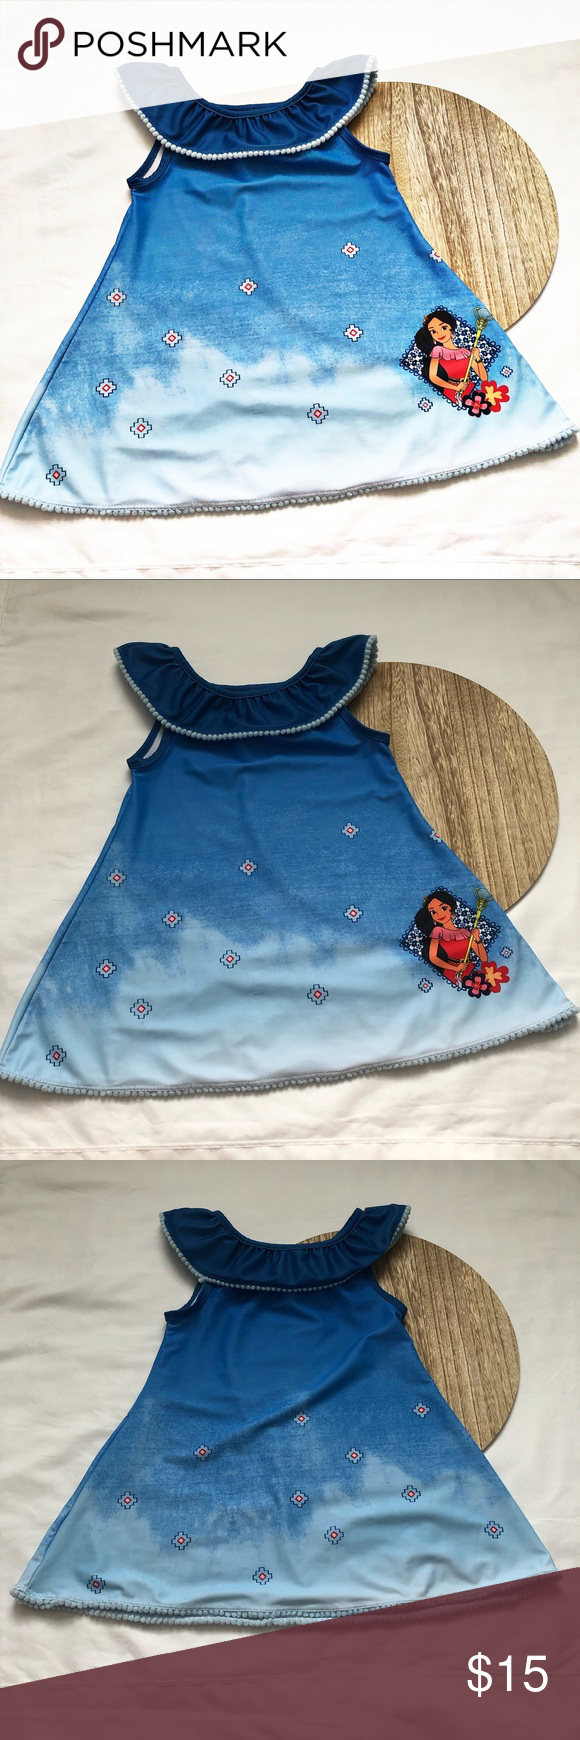 a41673fb69f2a NWOT Girls 2T Elena of Avalor Swim Coverup NWOT Girls 2T cover up. Only  tried